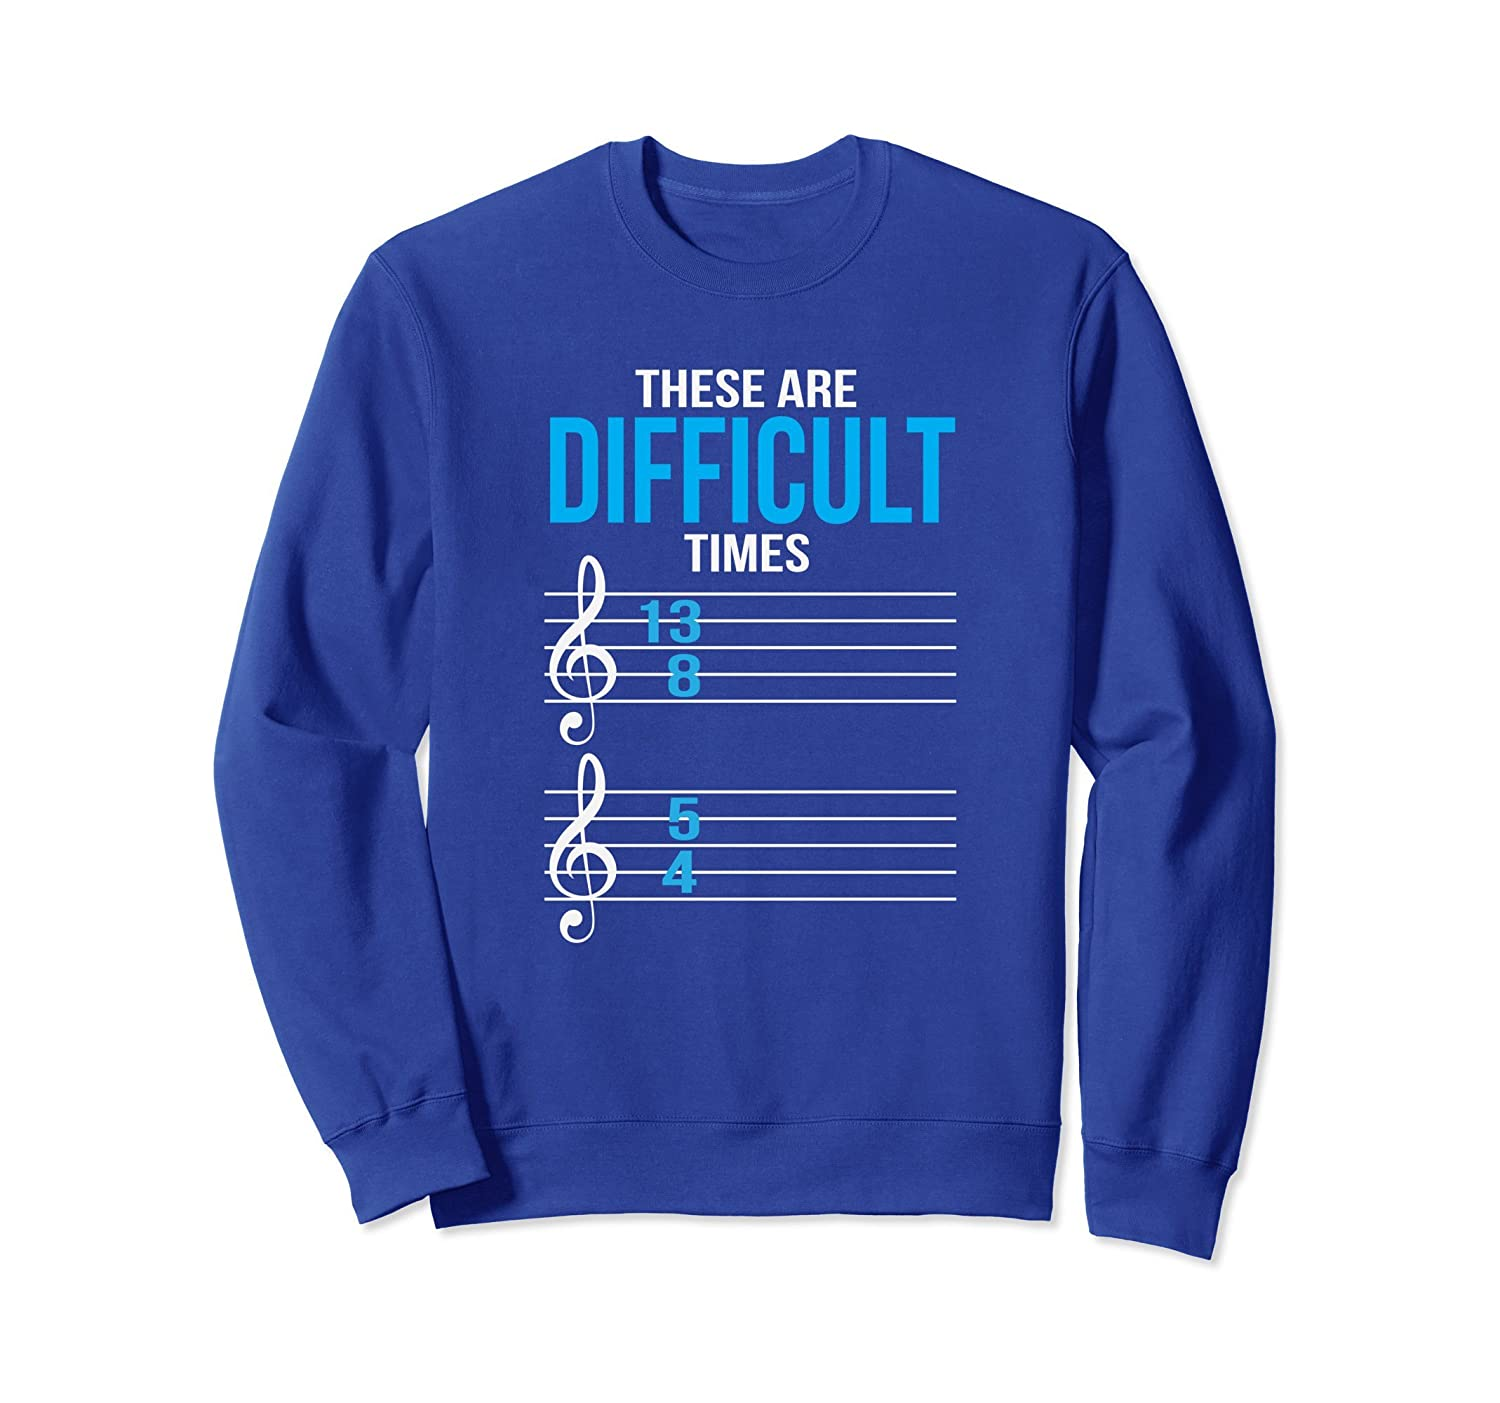 Funny These Are Difficult Times Sweatshirt Music Joke Shirt-mt